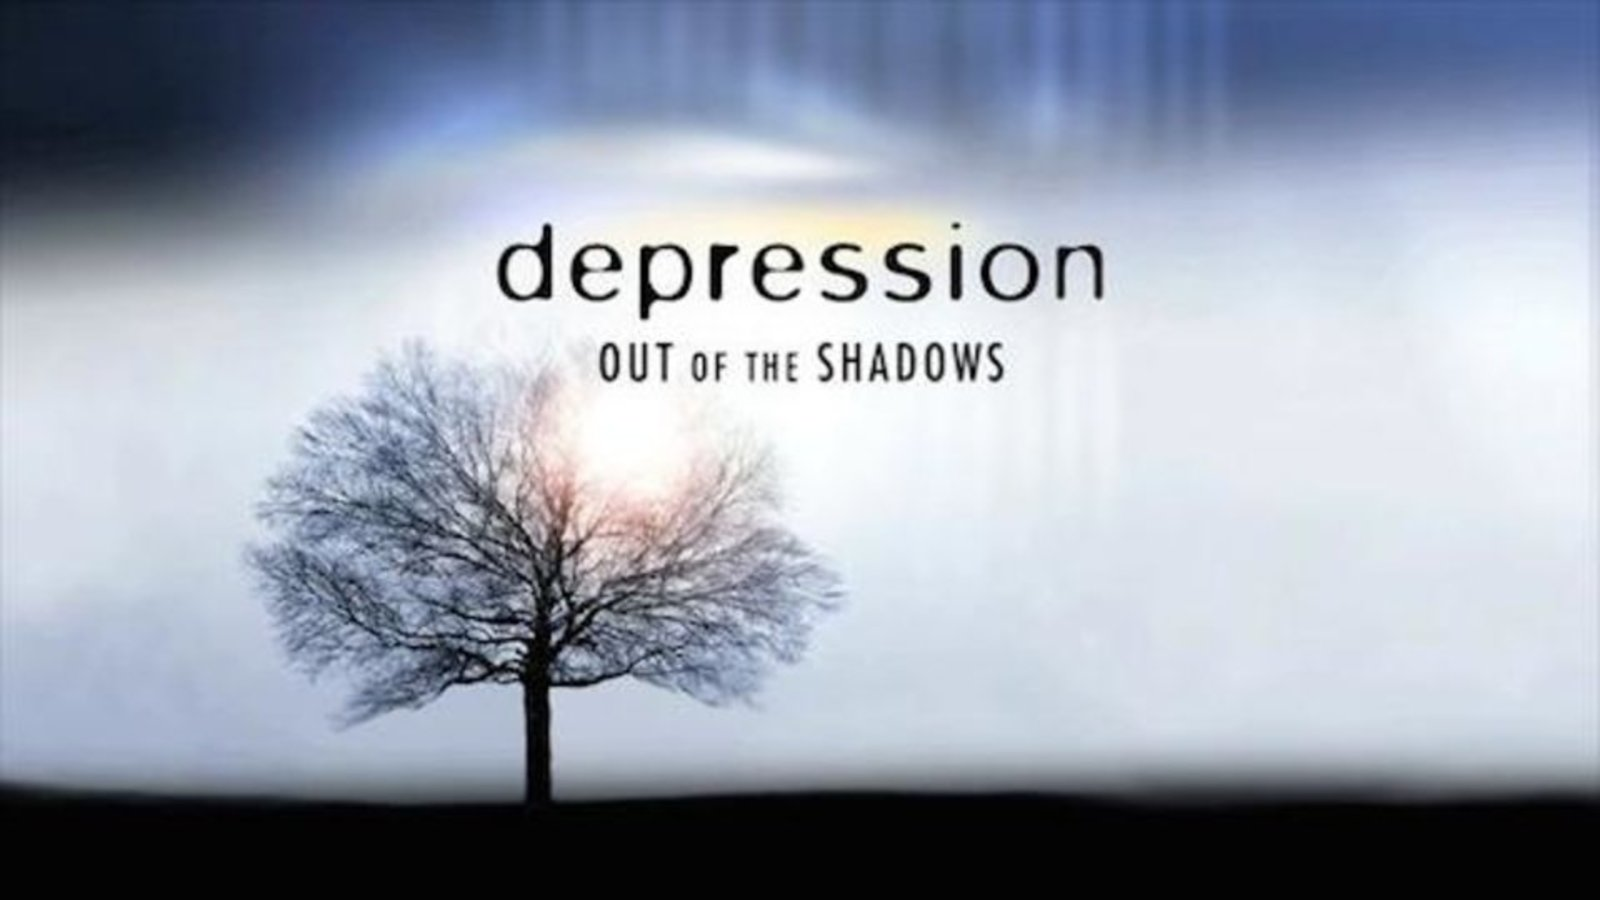 Depression - Out of the Shadows